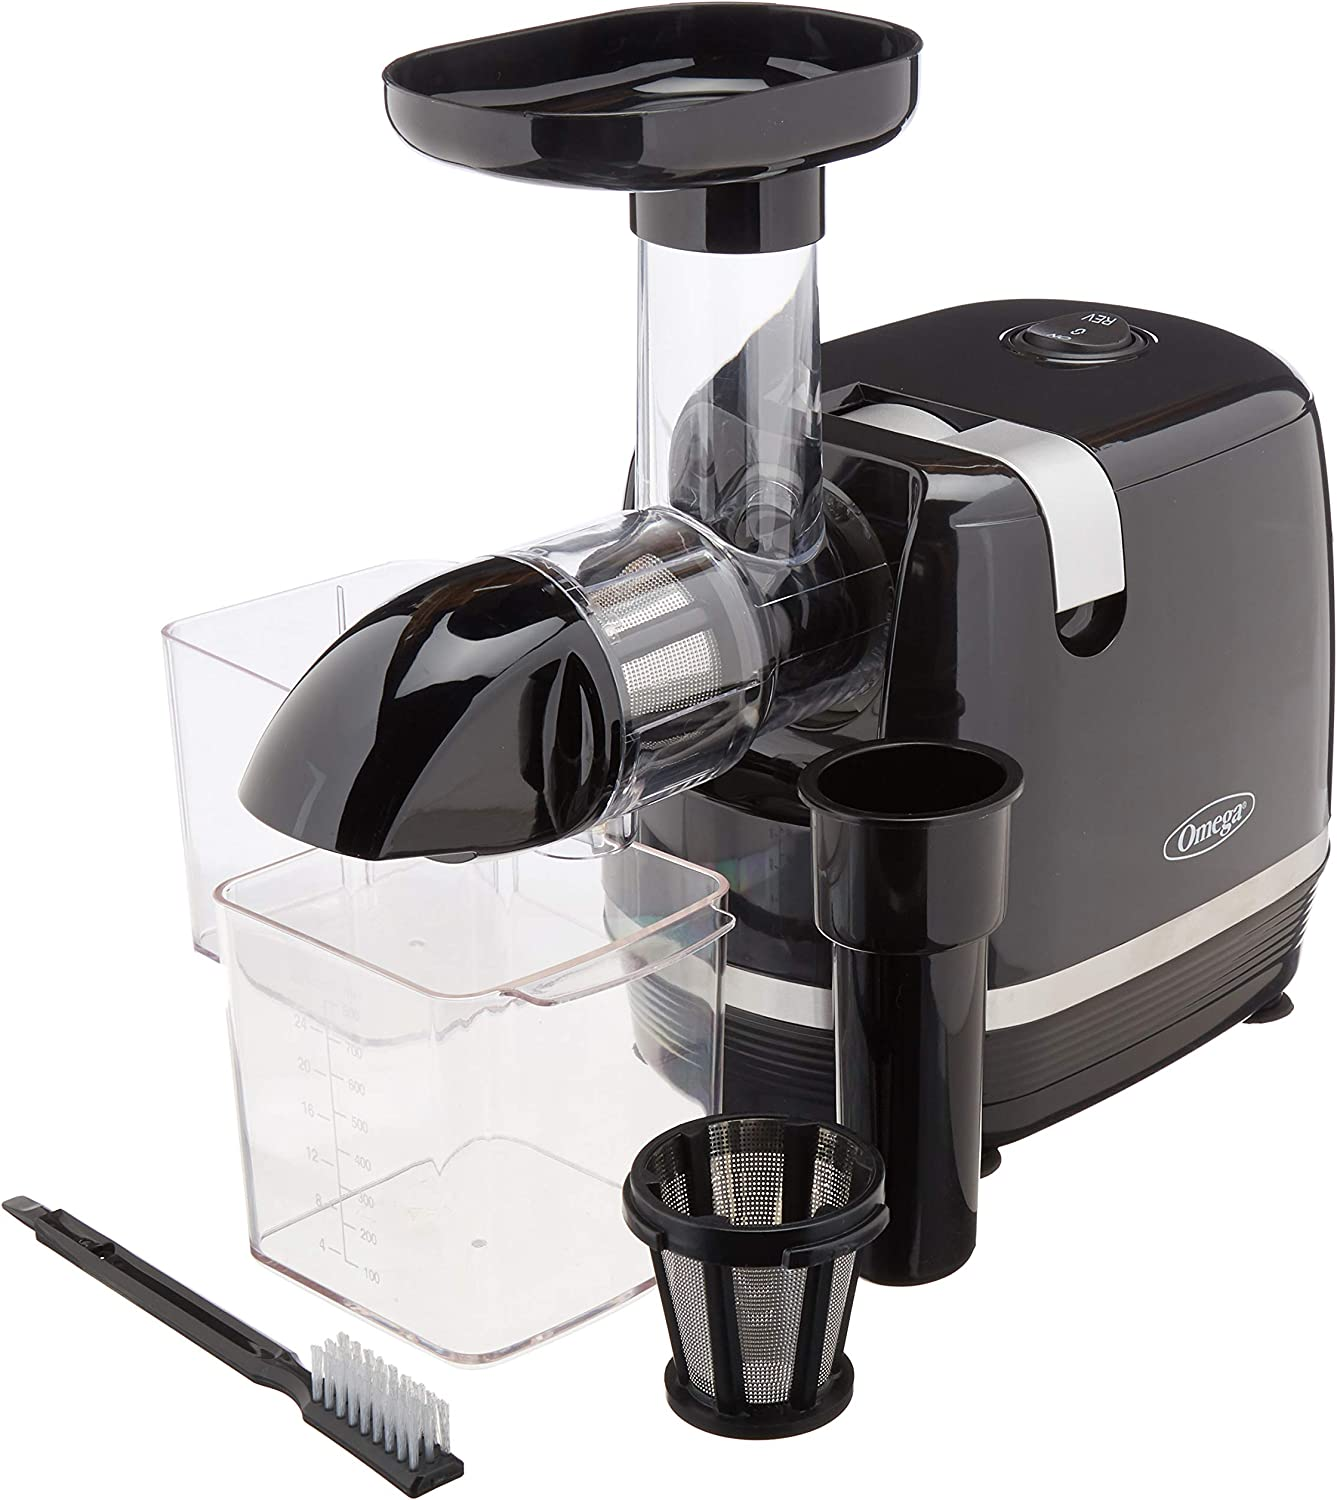 Omega H3000R Cold Press 365 Juicer Slow Masticating Extractor Creates Delicious Fruit Vegetable and Leafy Green High Juice Yield and Preserves Nutritional Value, 150-Watt, Black